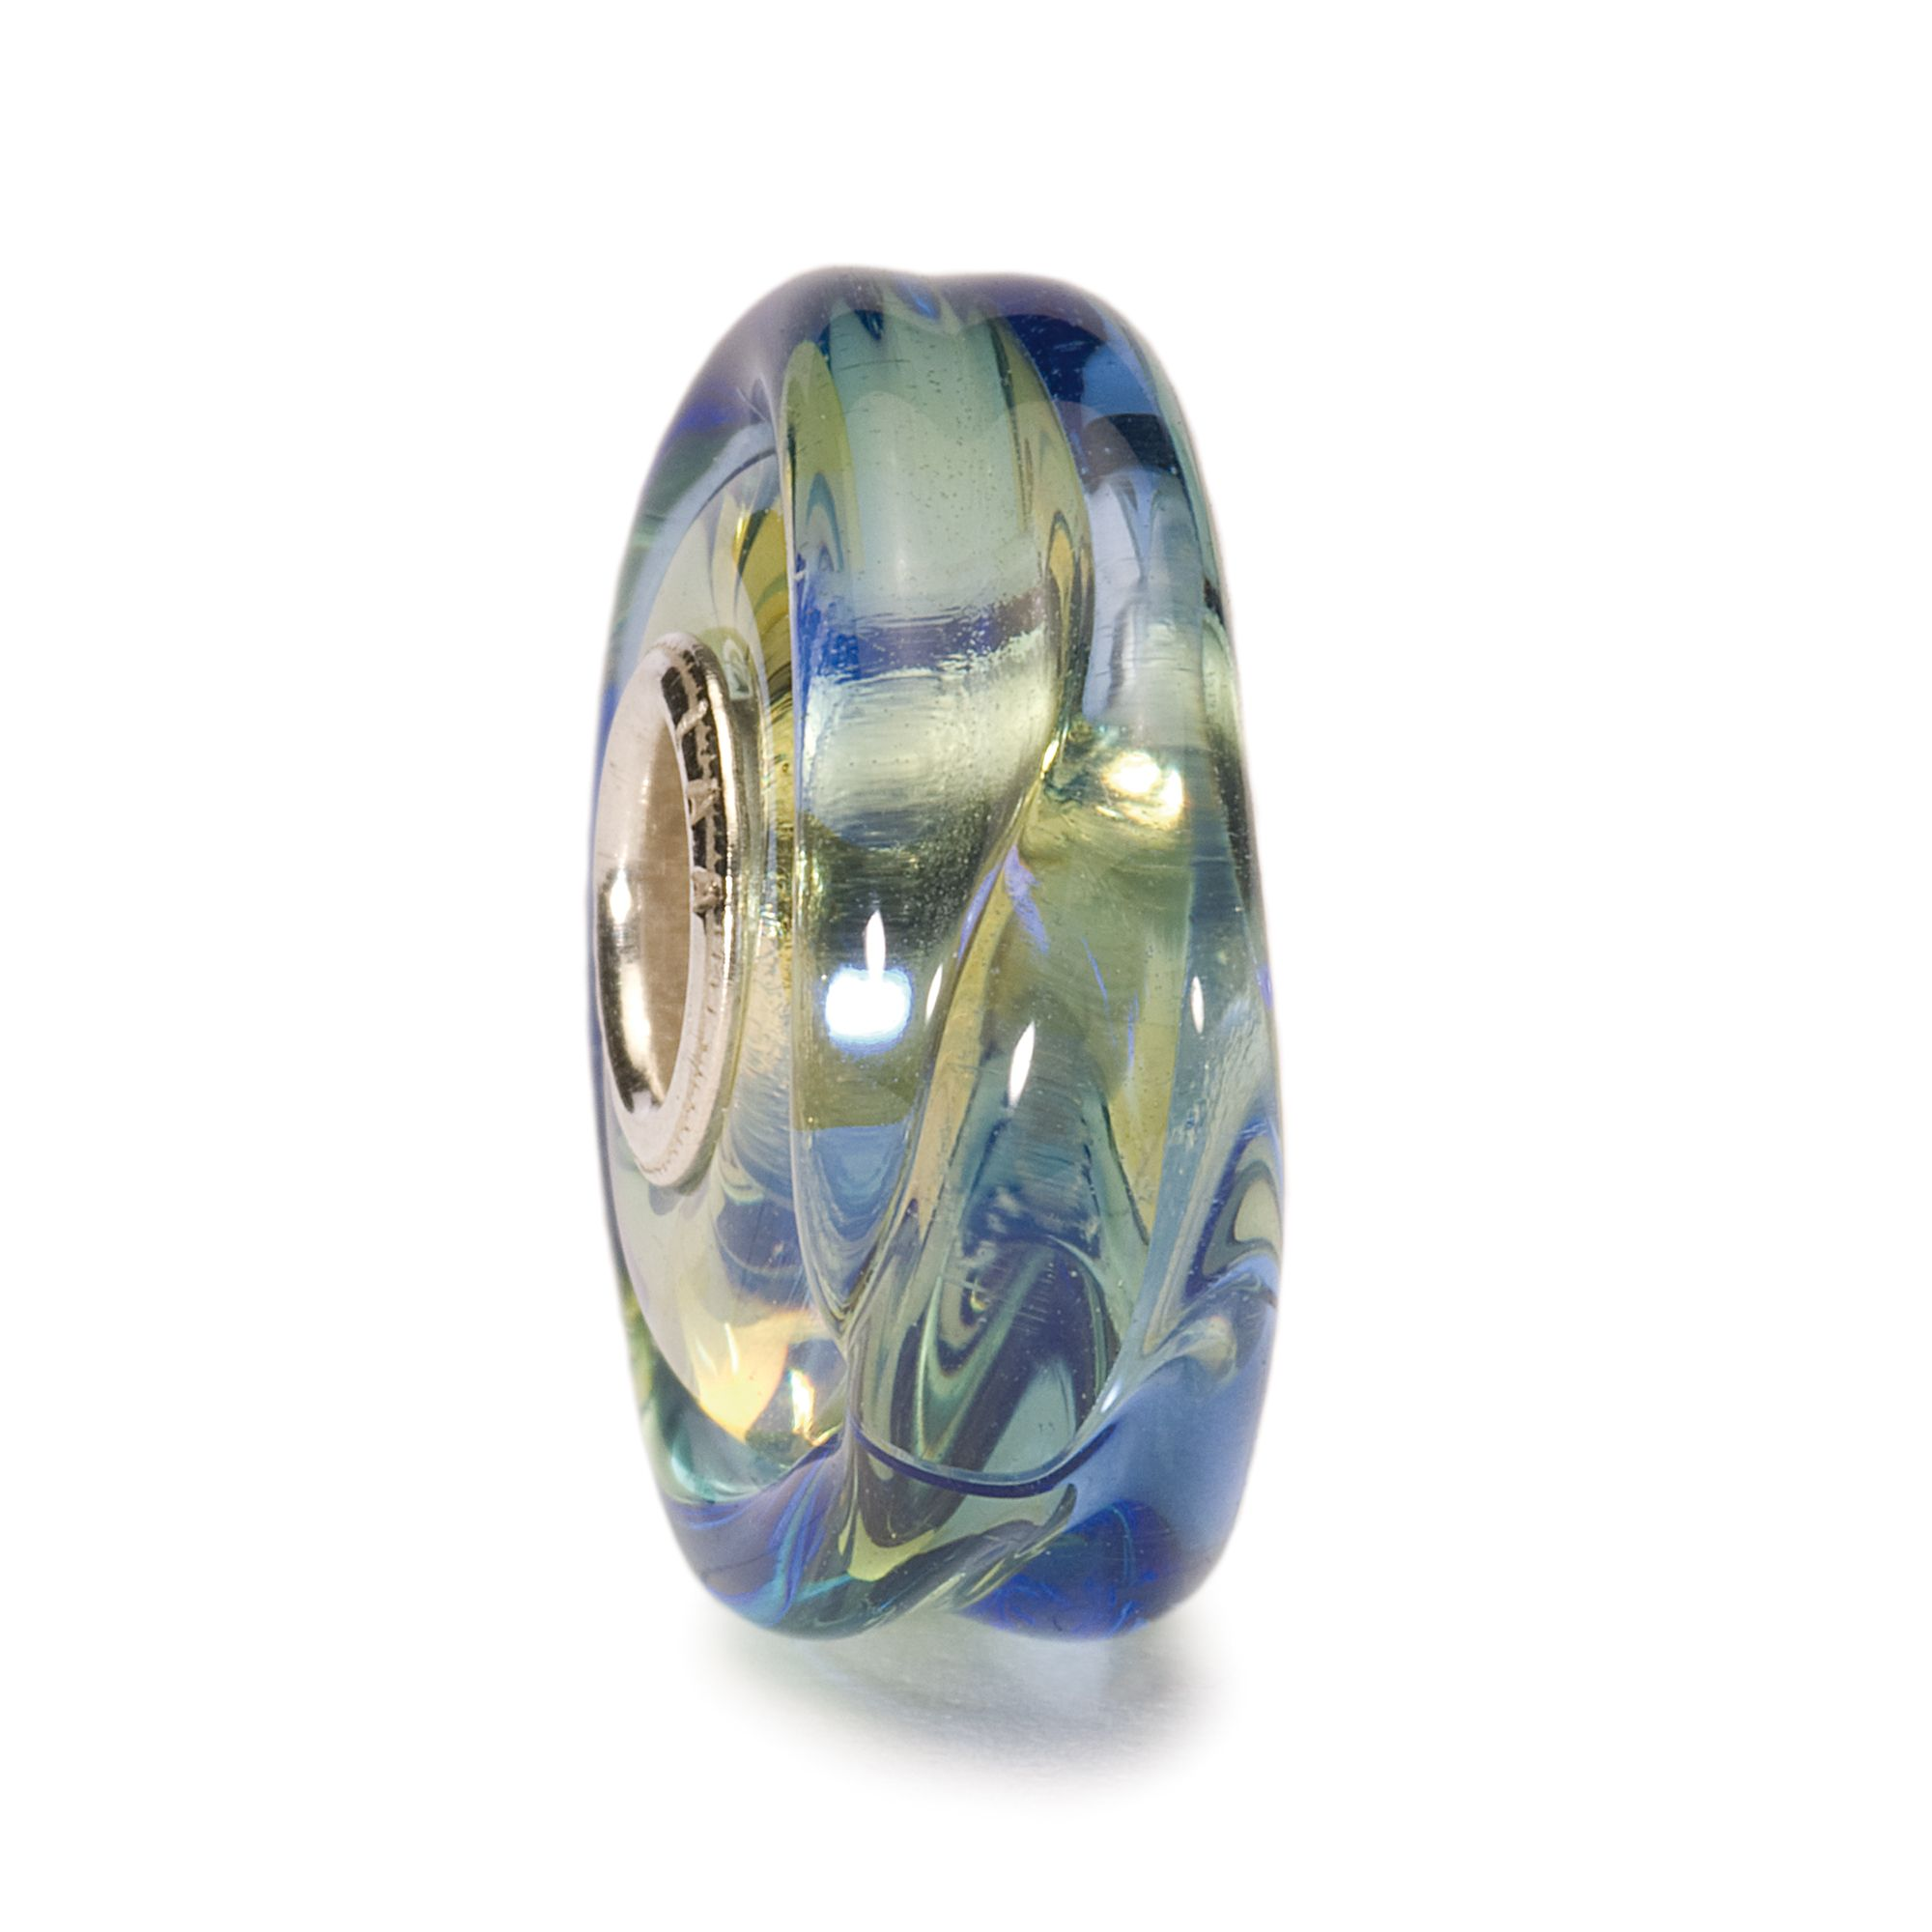 Cool Dusk glass charm bead